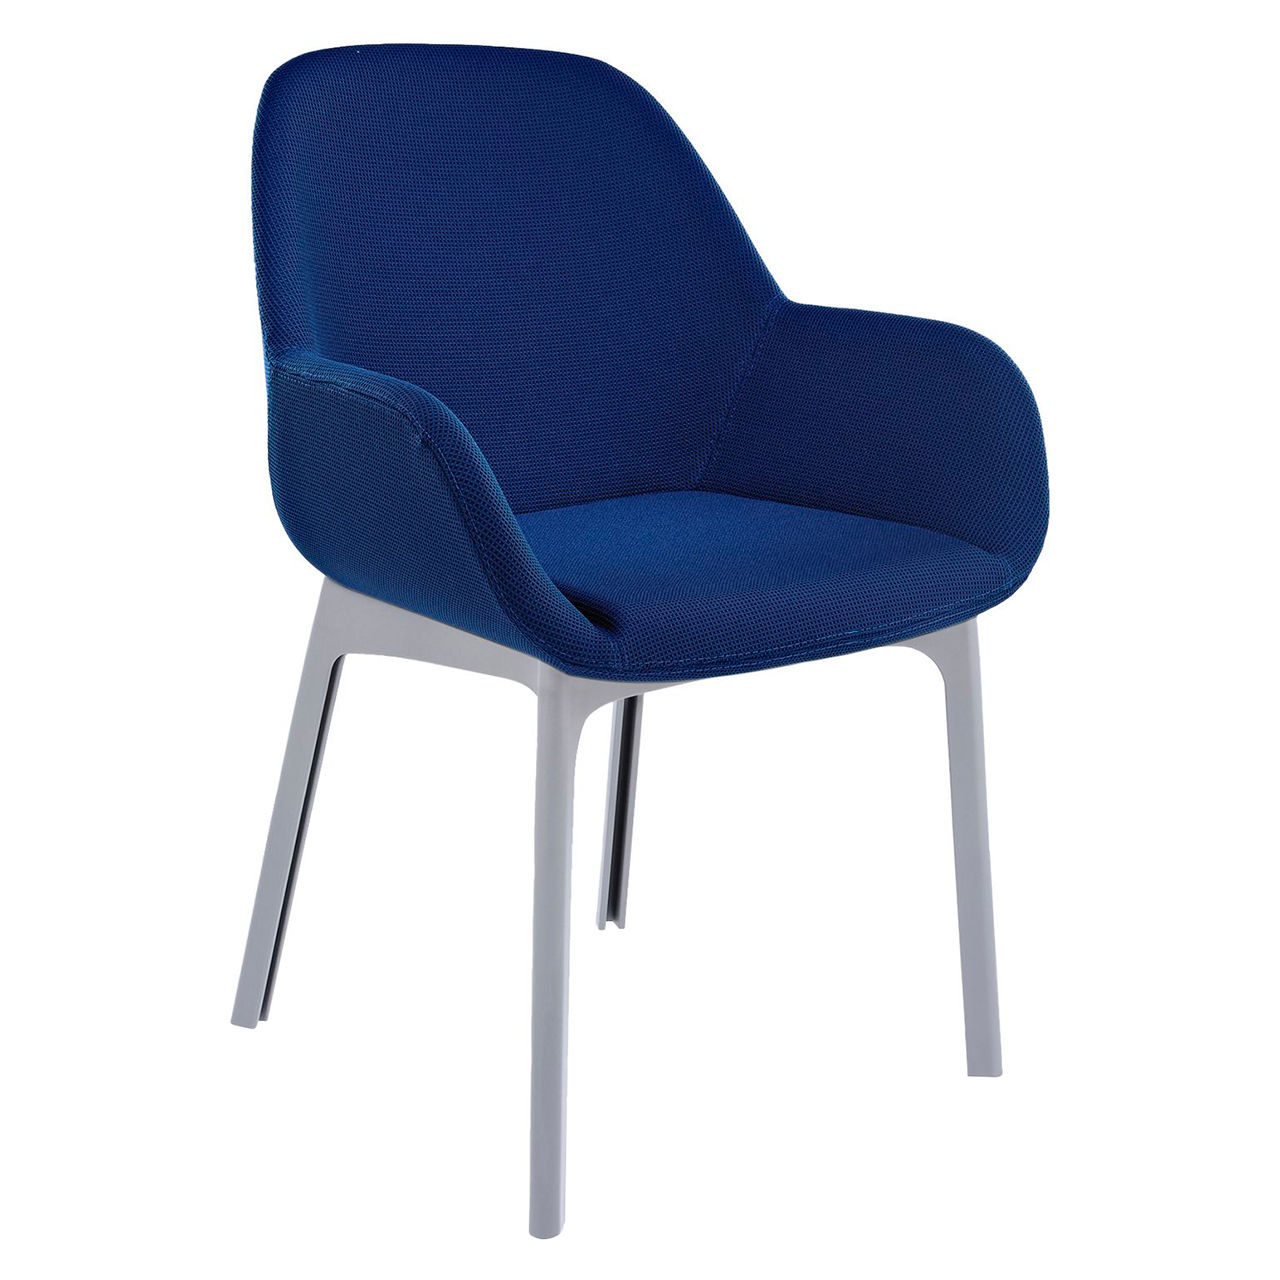 Clap Solid Chair in Trevira Blue by Kartell